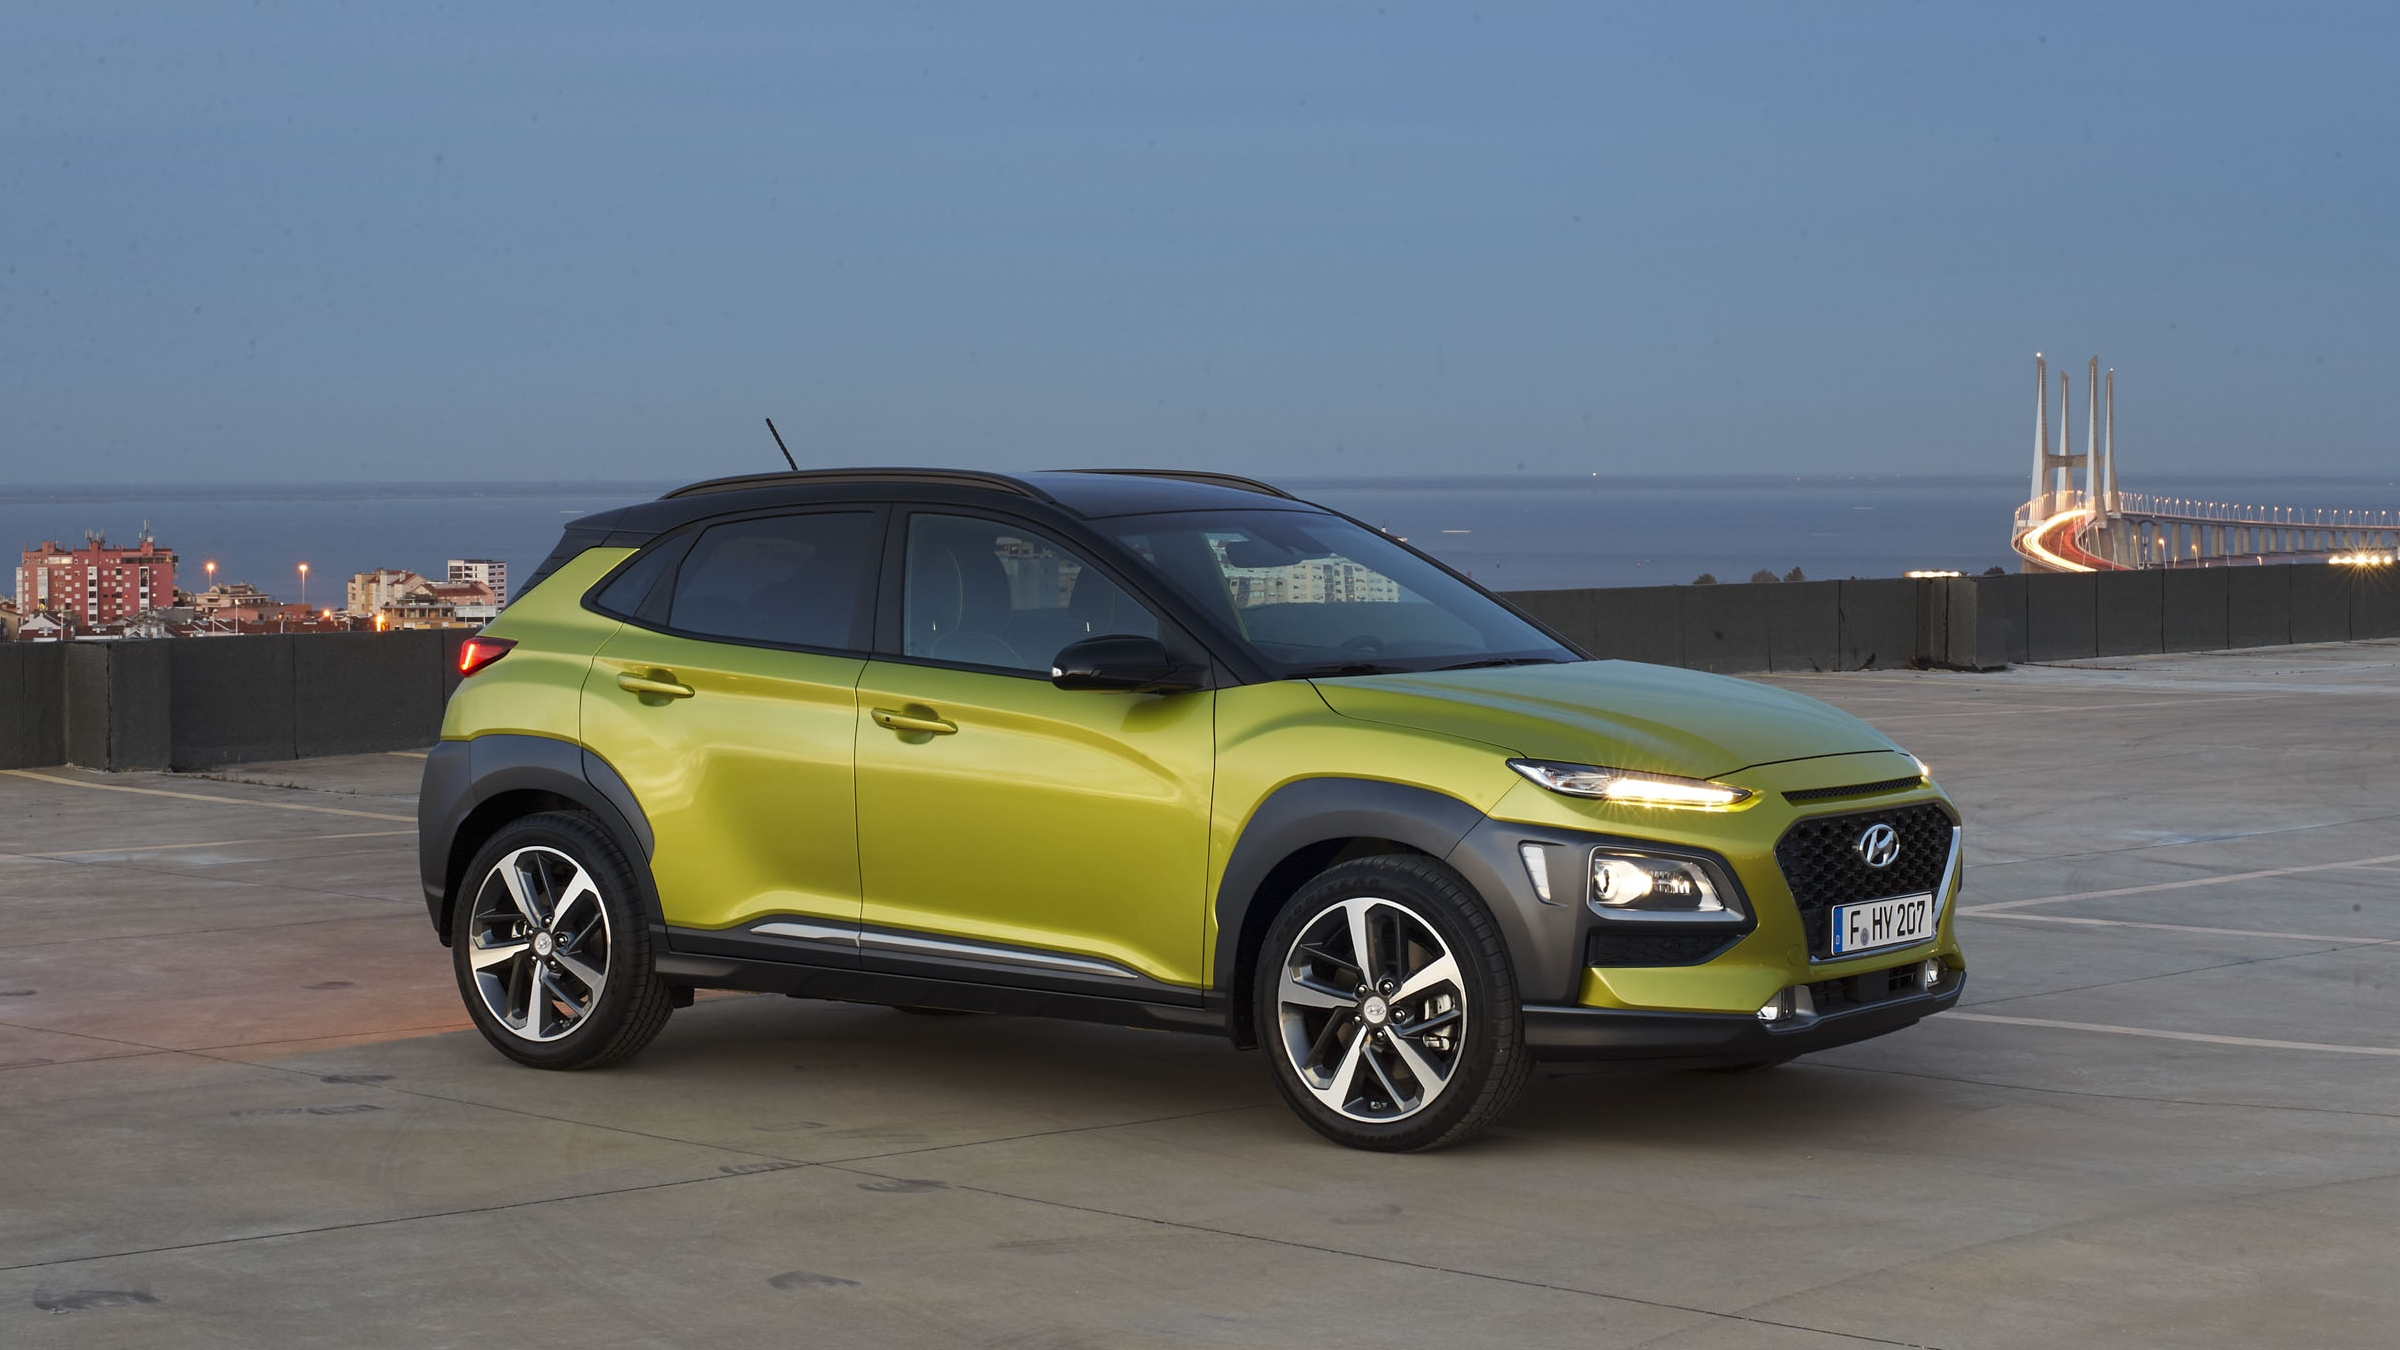 2018 hyundai kona top speed 2018 hyundai kona top speed solutioingenieria Image collections